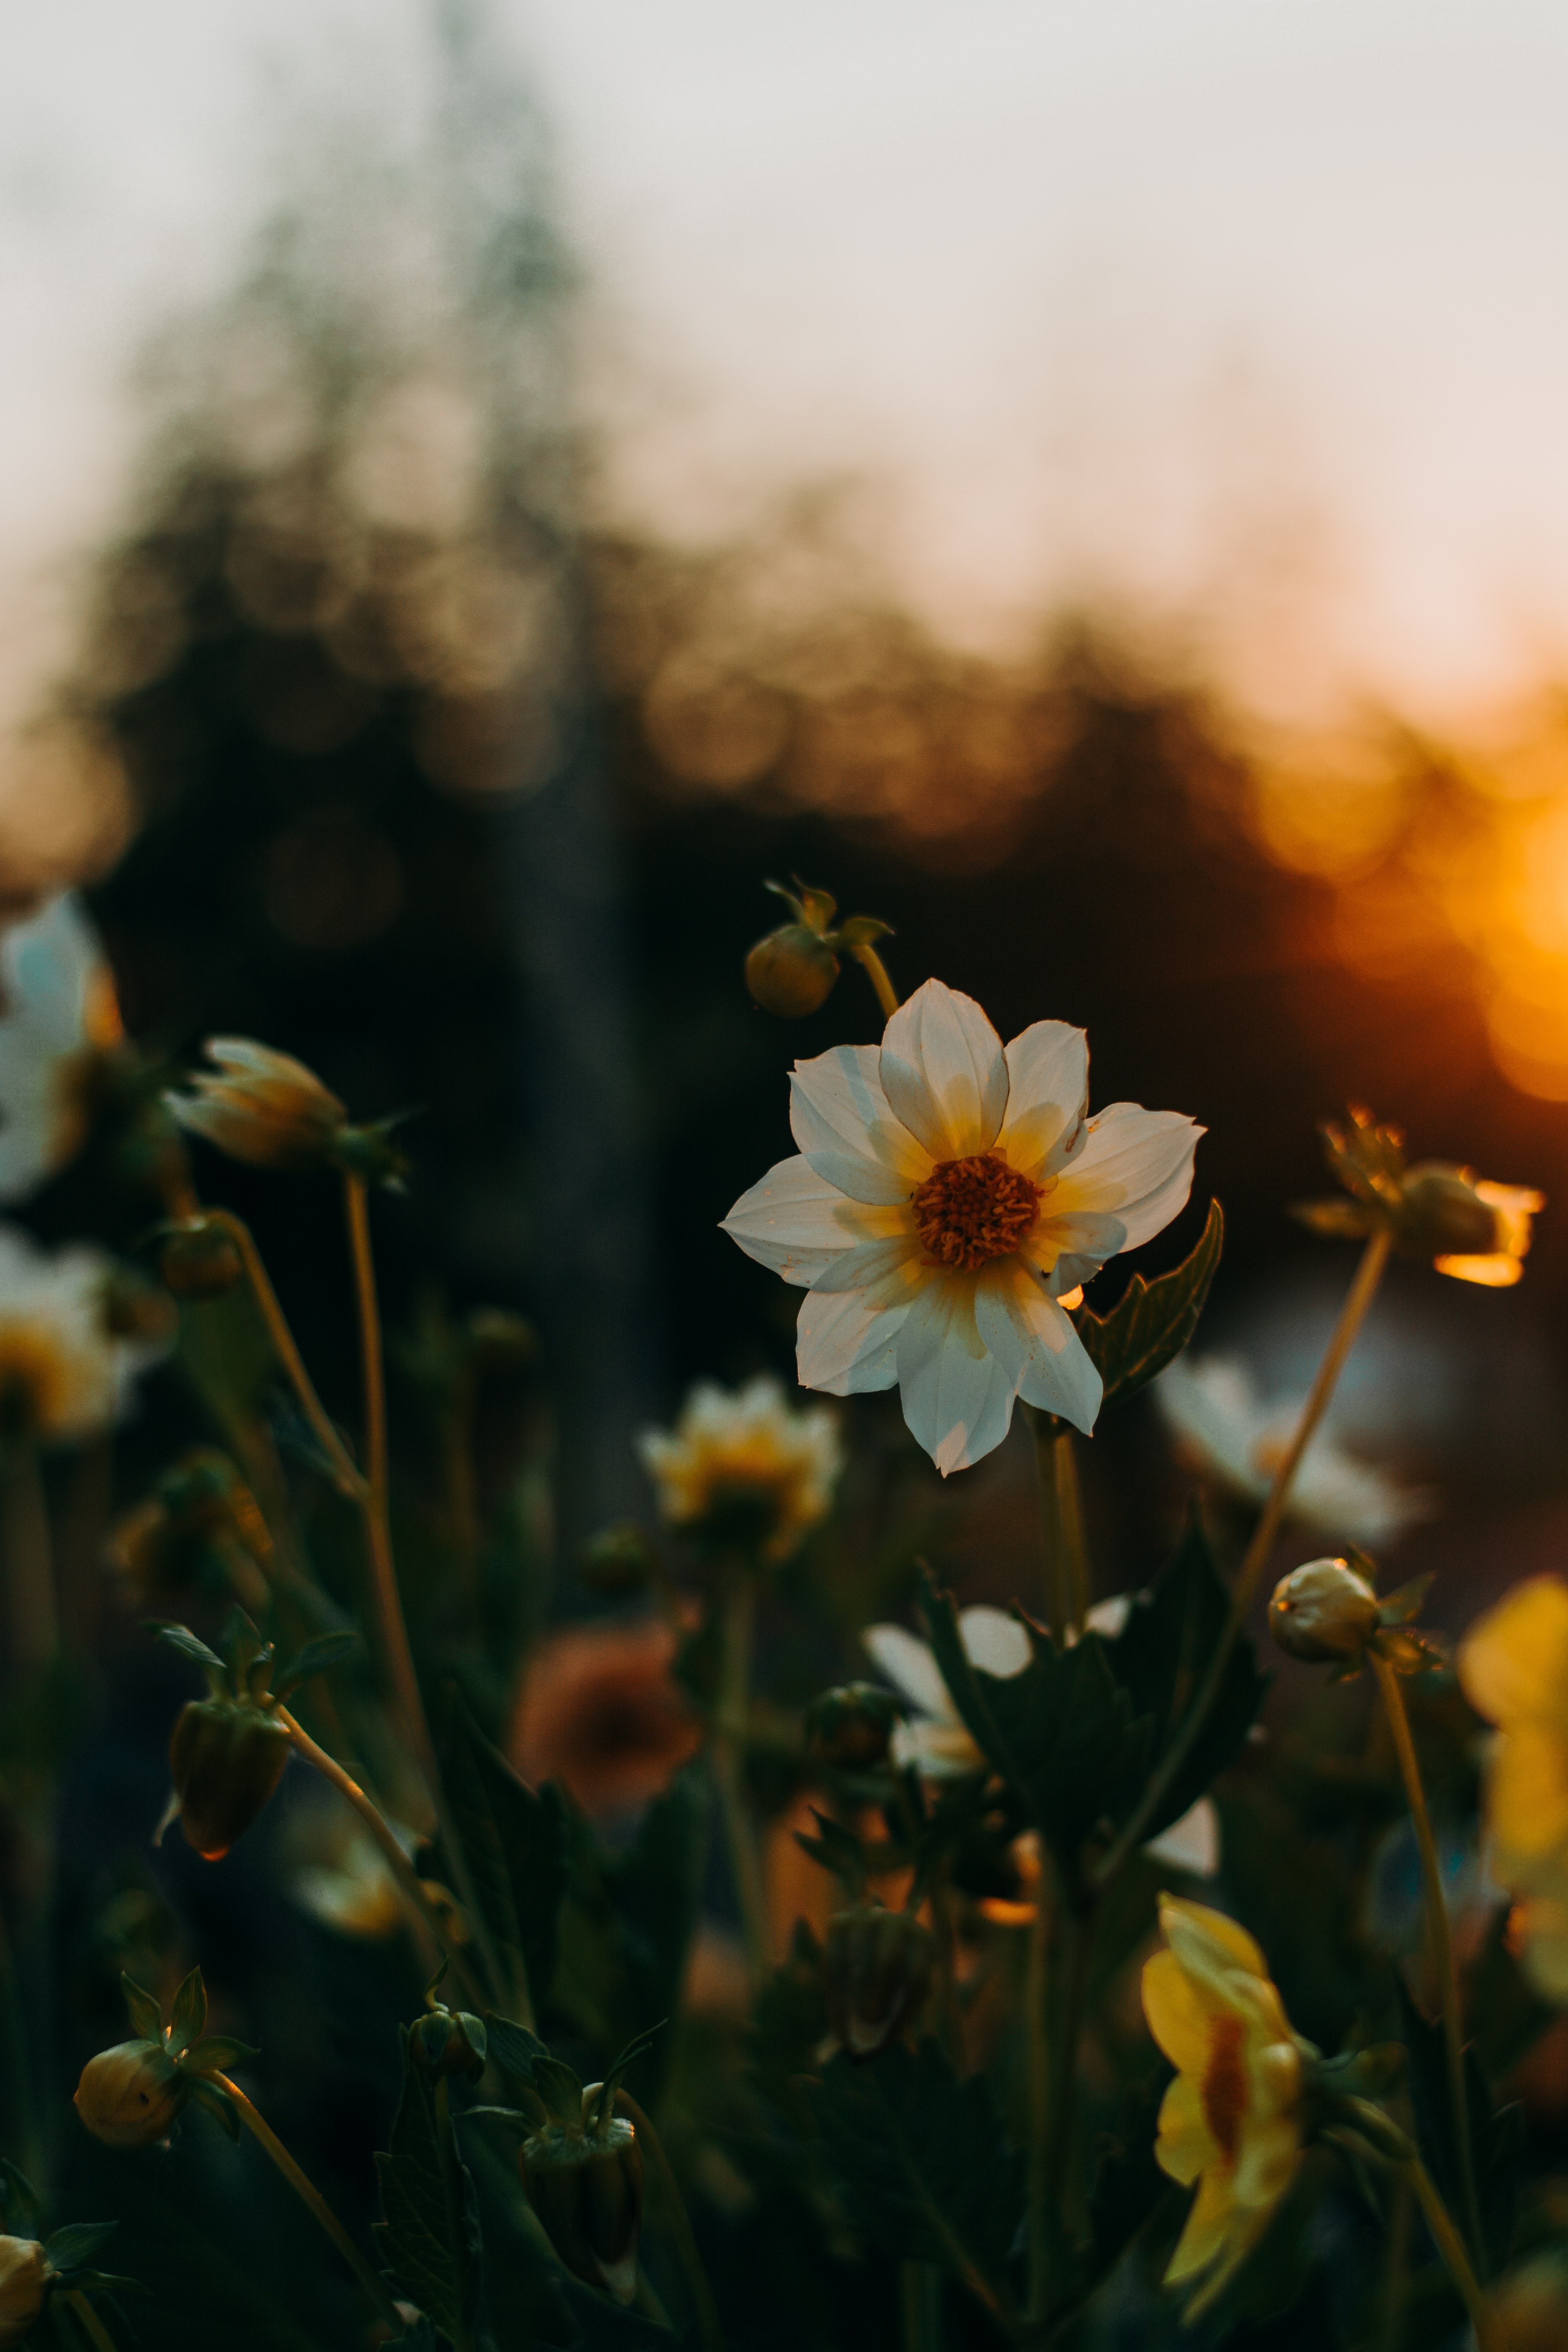 117545 Screensavers and Wallpapers Flower Bed for phone. Download Flowers, Sunset, Blur, Smooth, Flower Bed, Flowerbed pictures for free